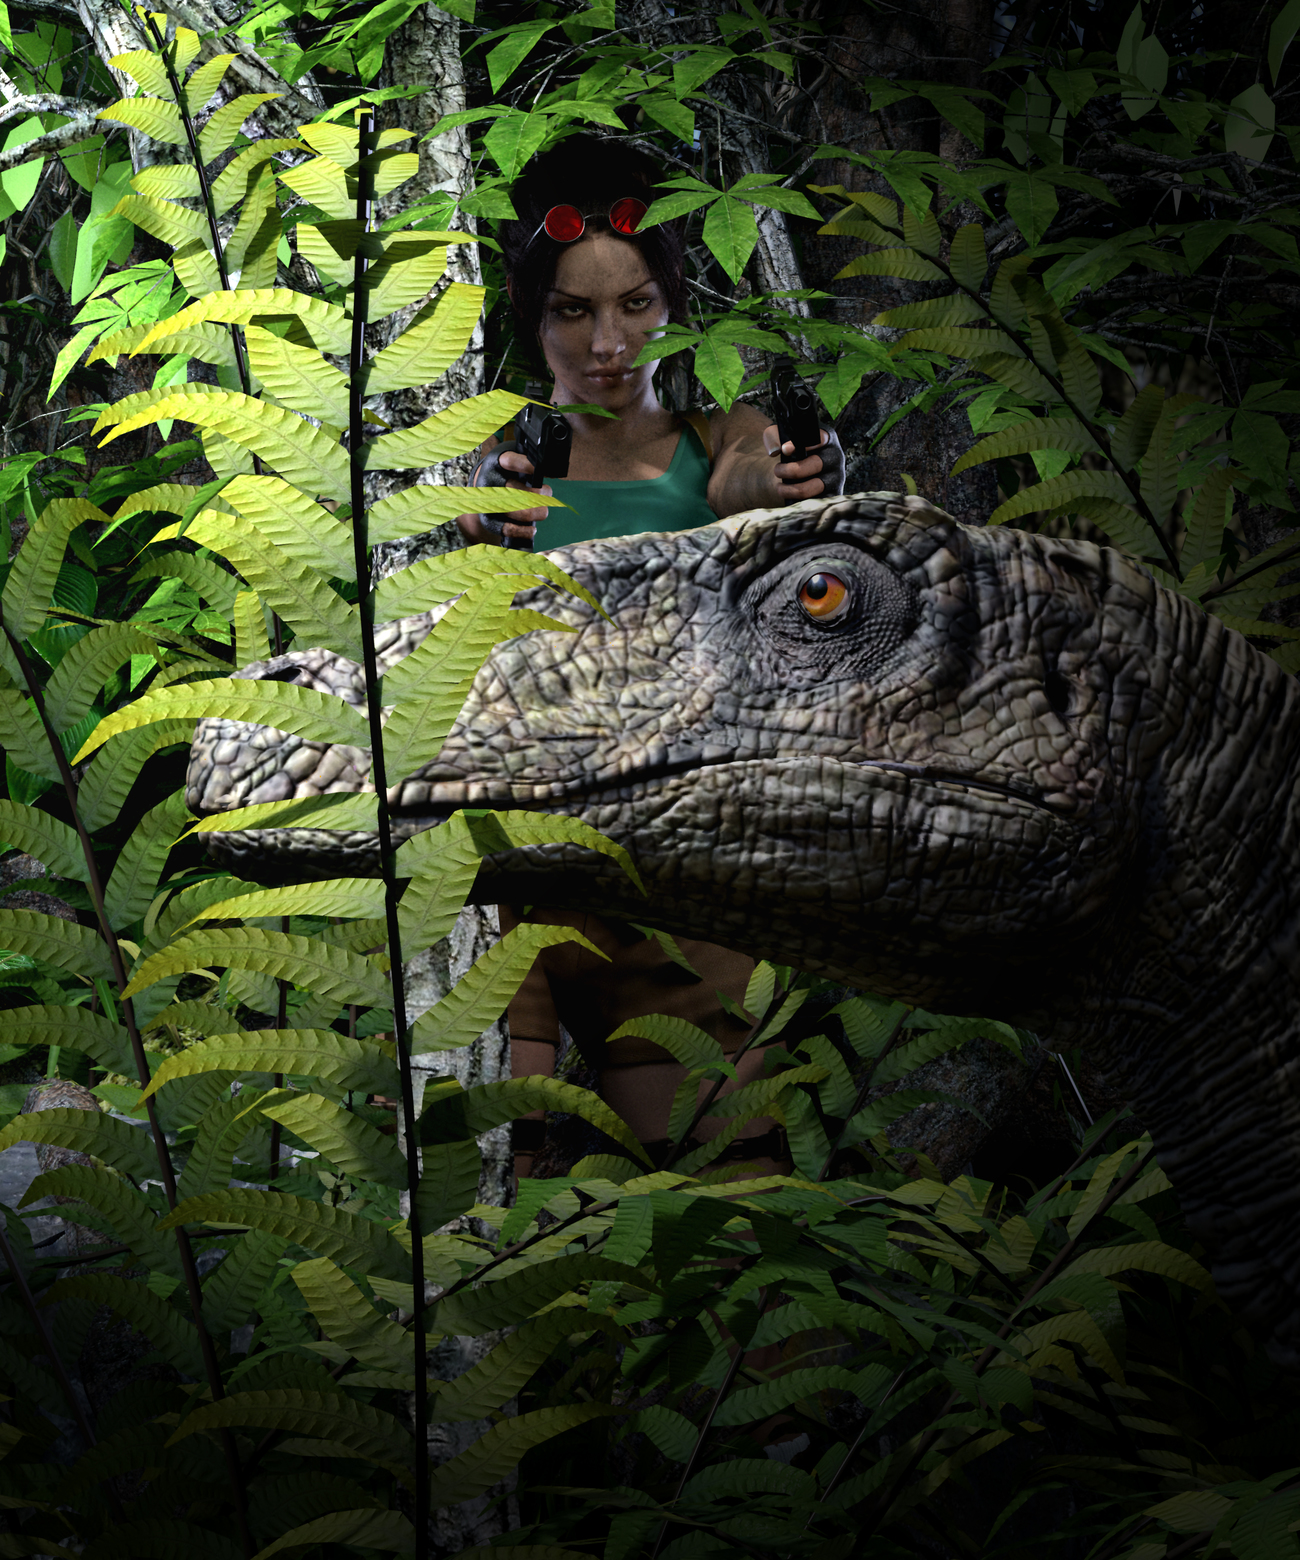 Clever Girl by Fenris9